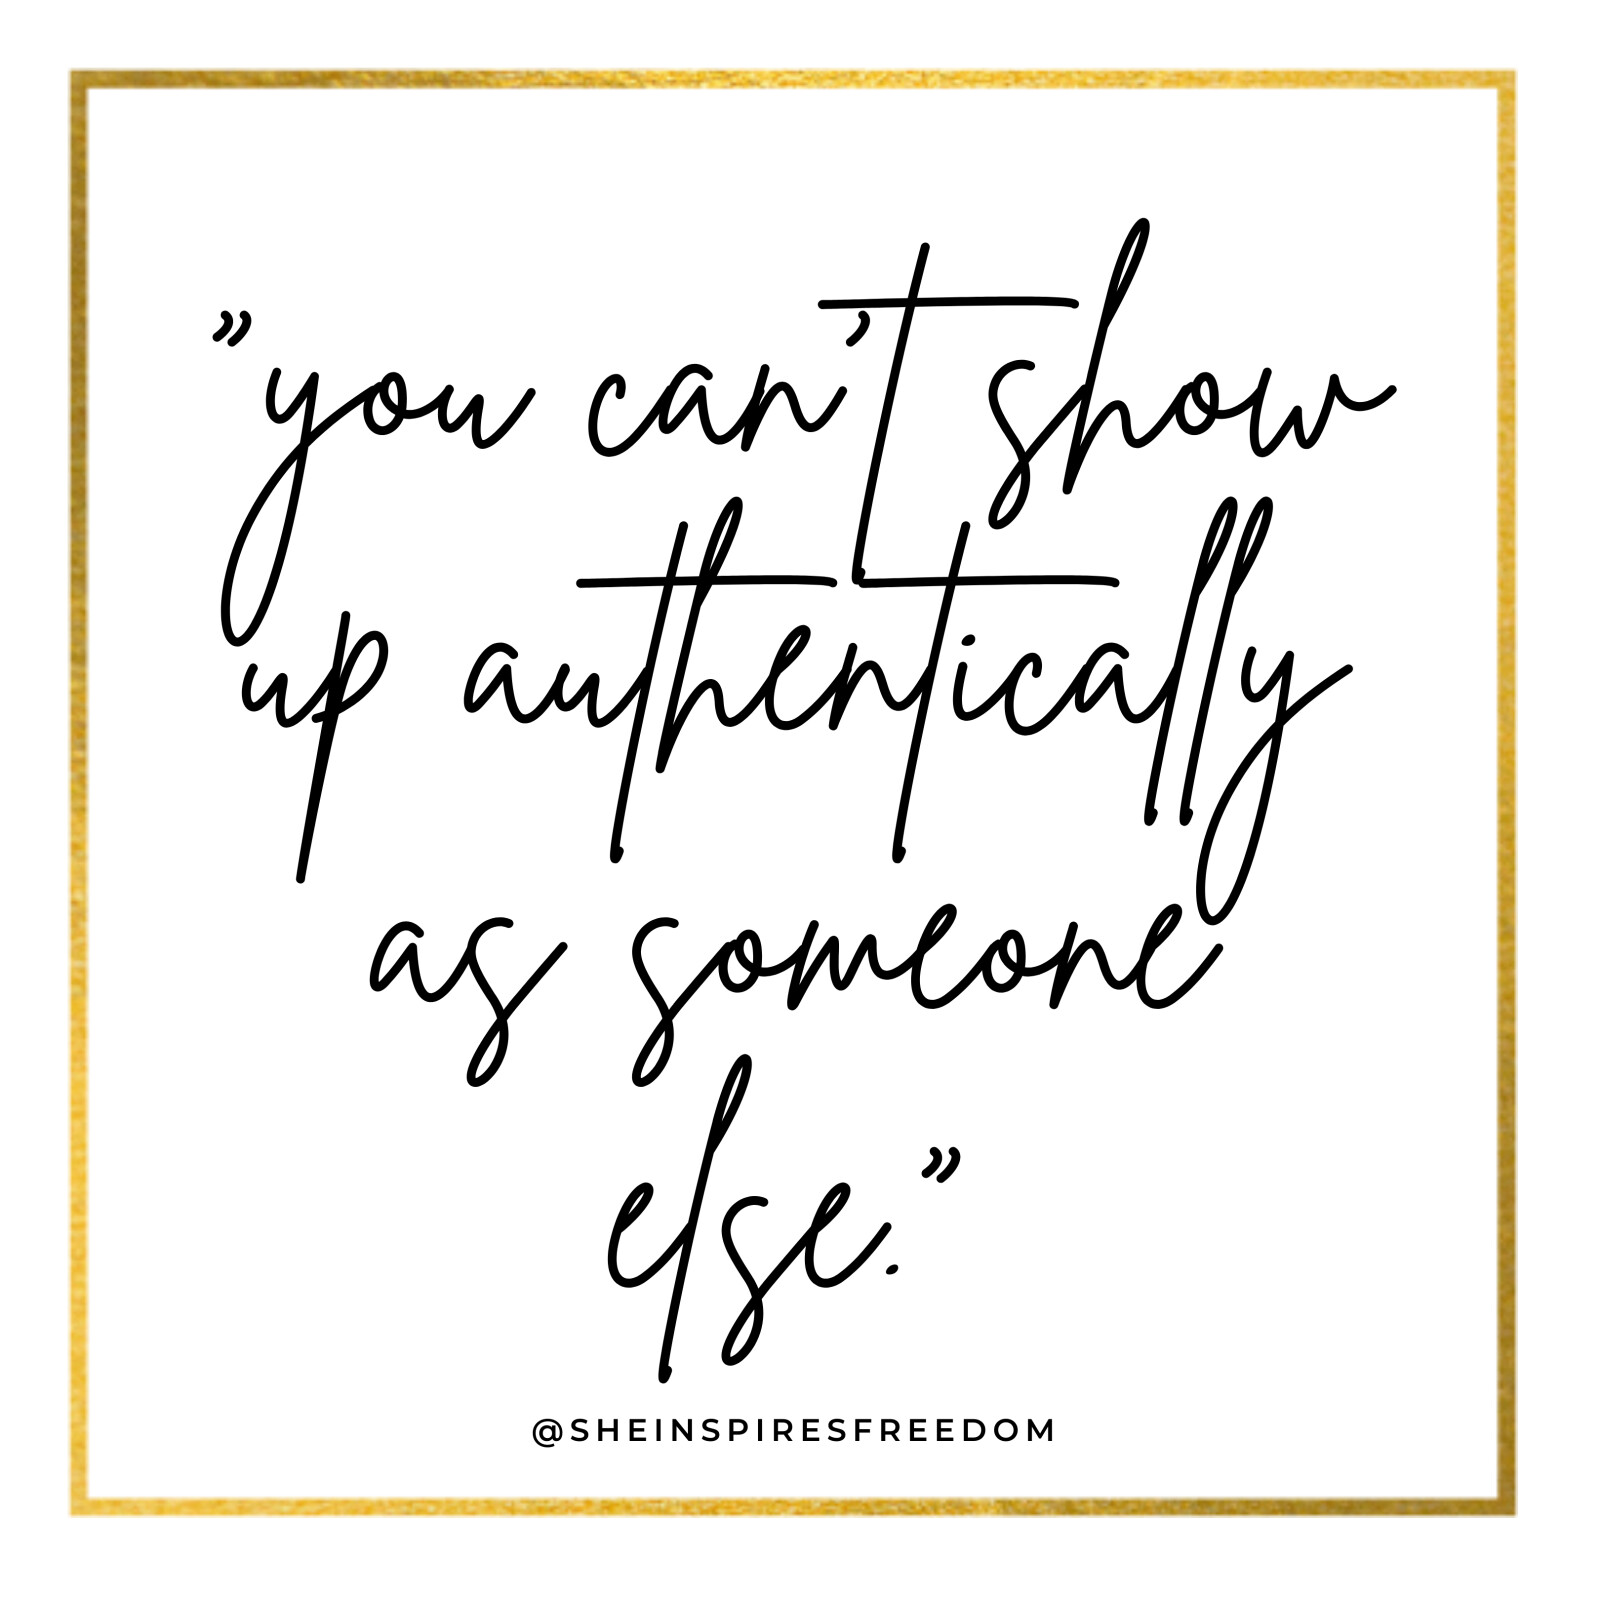 You can't show up authentically as someone else